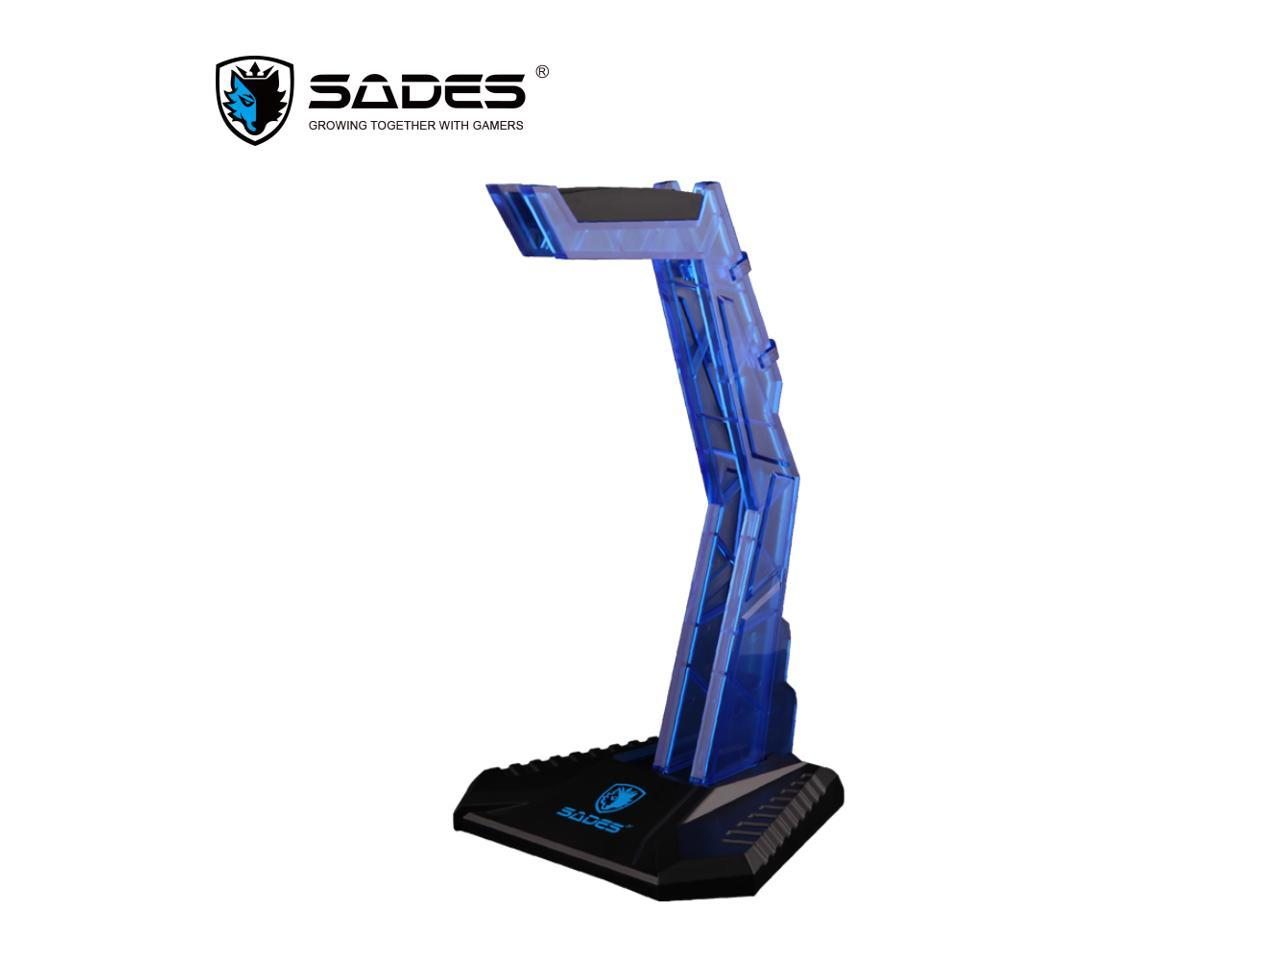 SADES Acrylic Headphone stand Headset Holder Pro gaming Protector